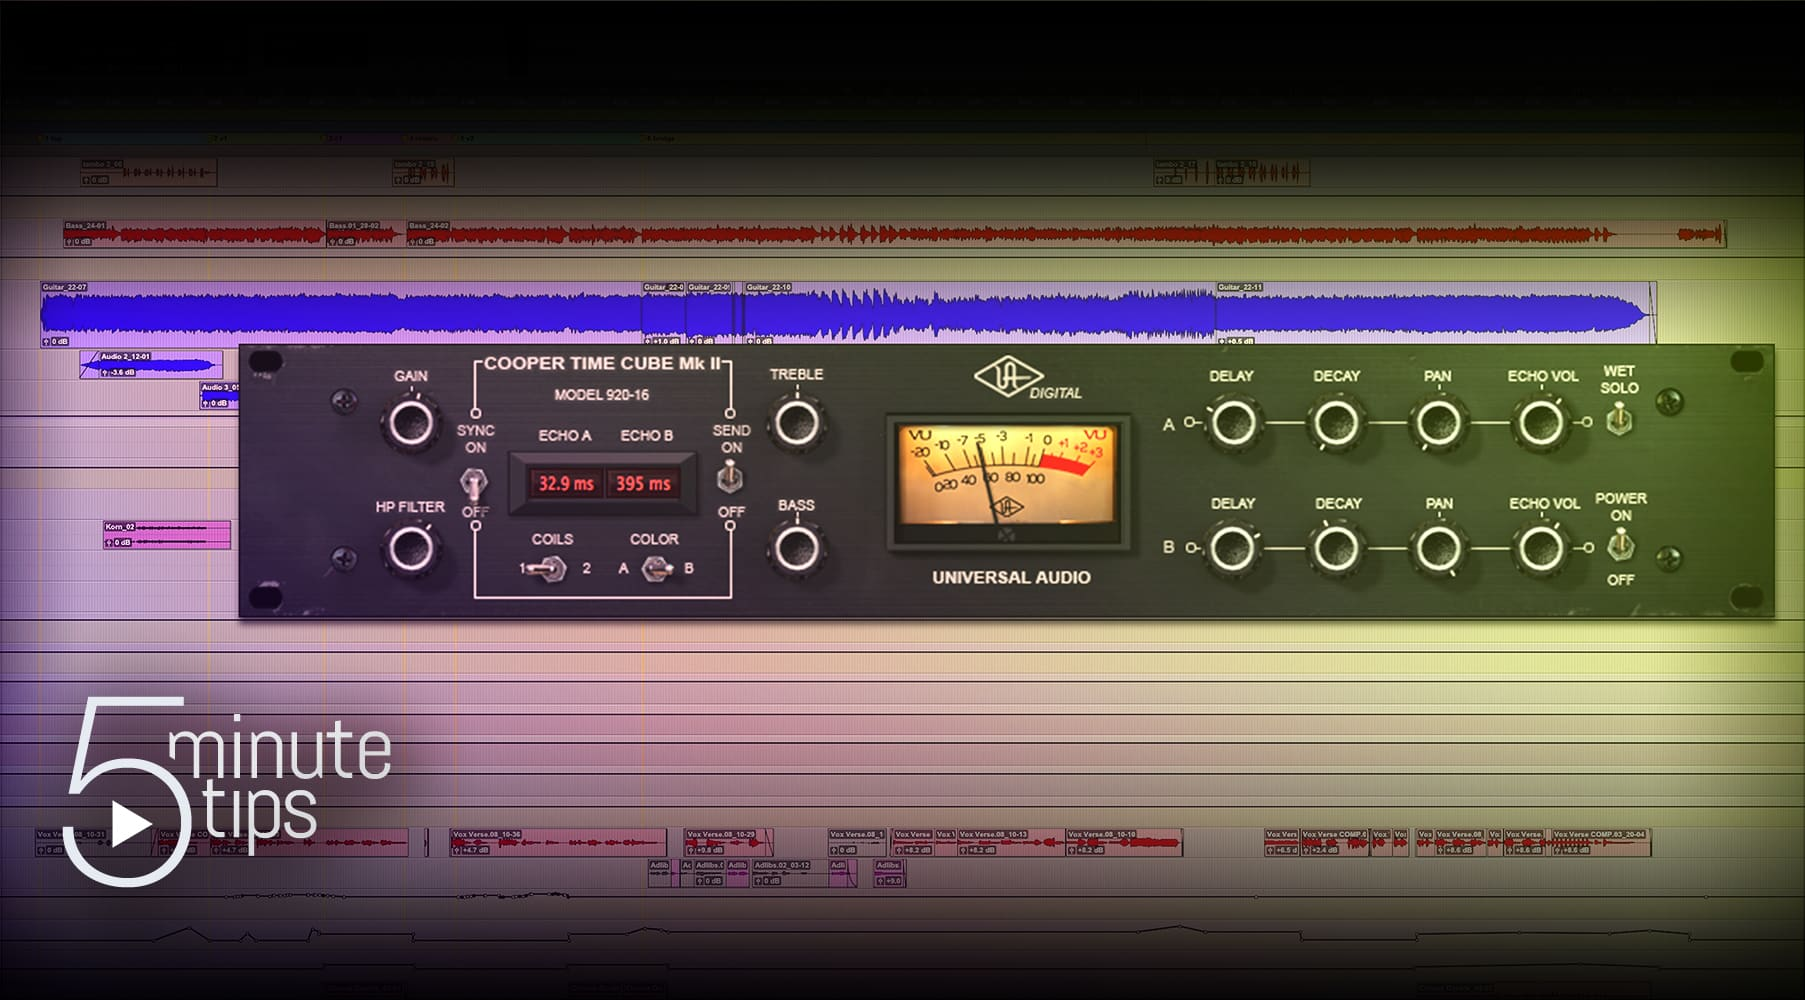 5-Min UAD Tips: Cooper Time Cube Plug-In